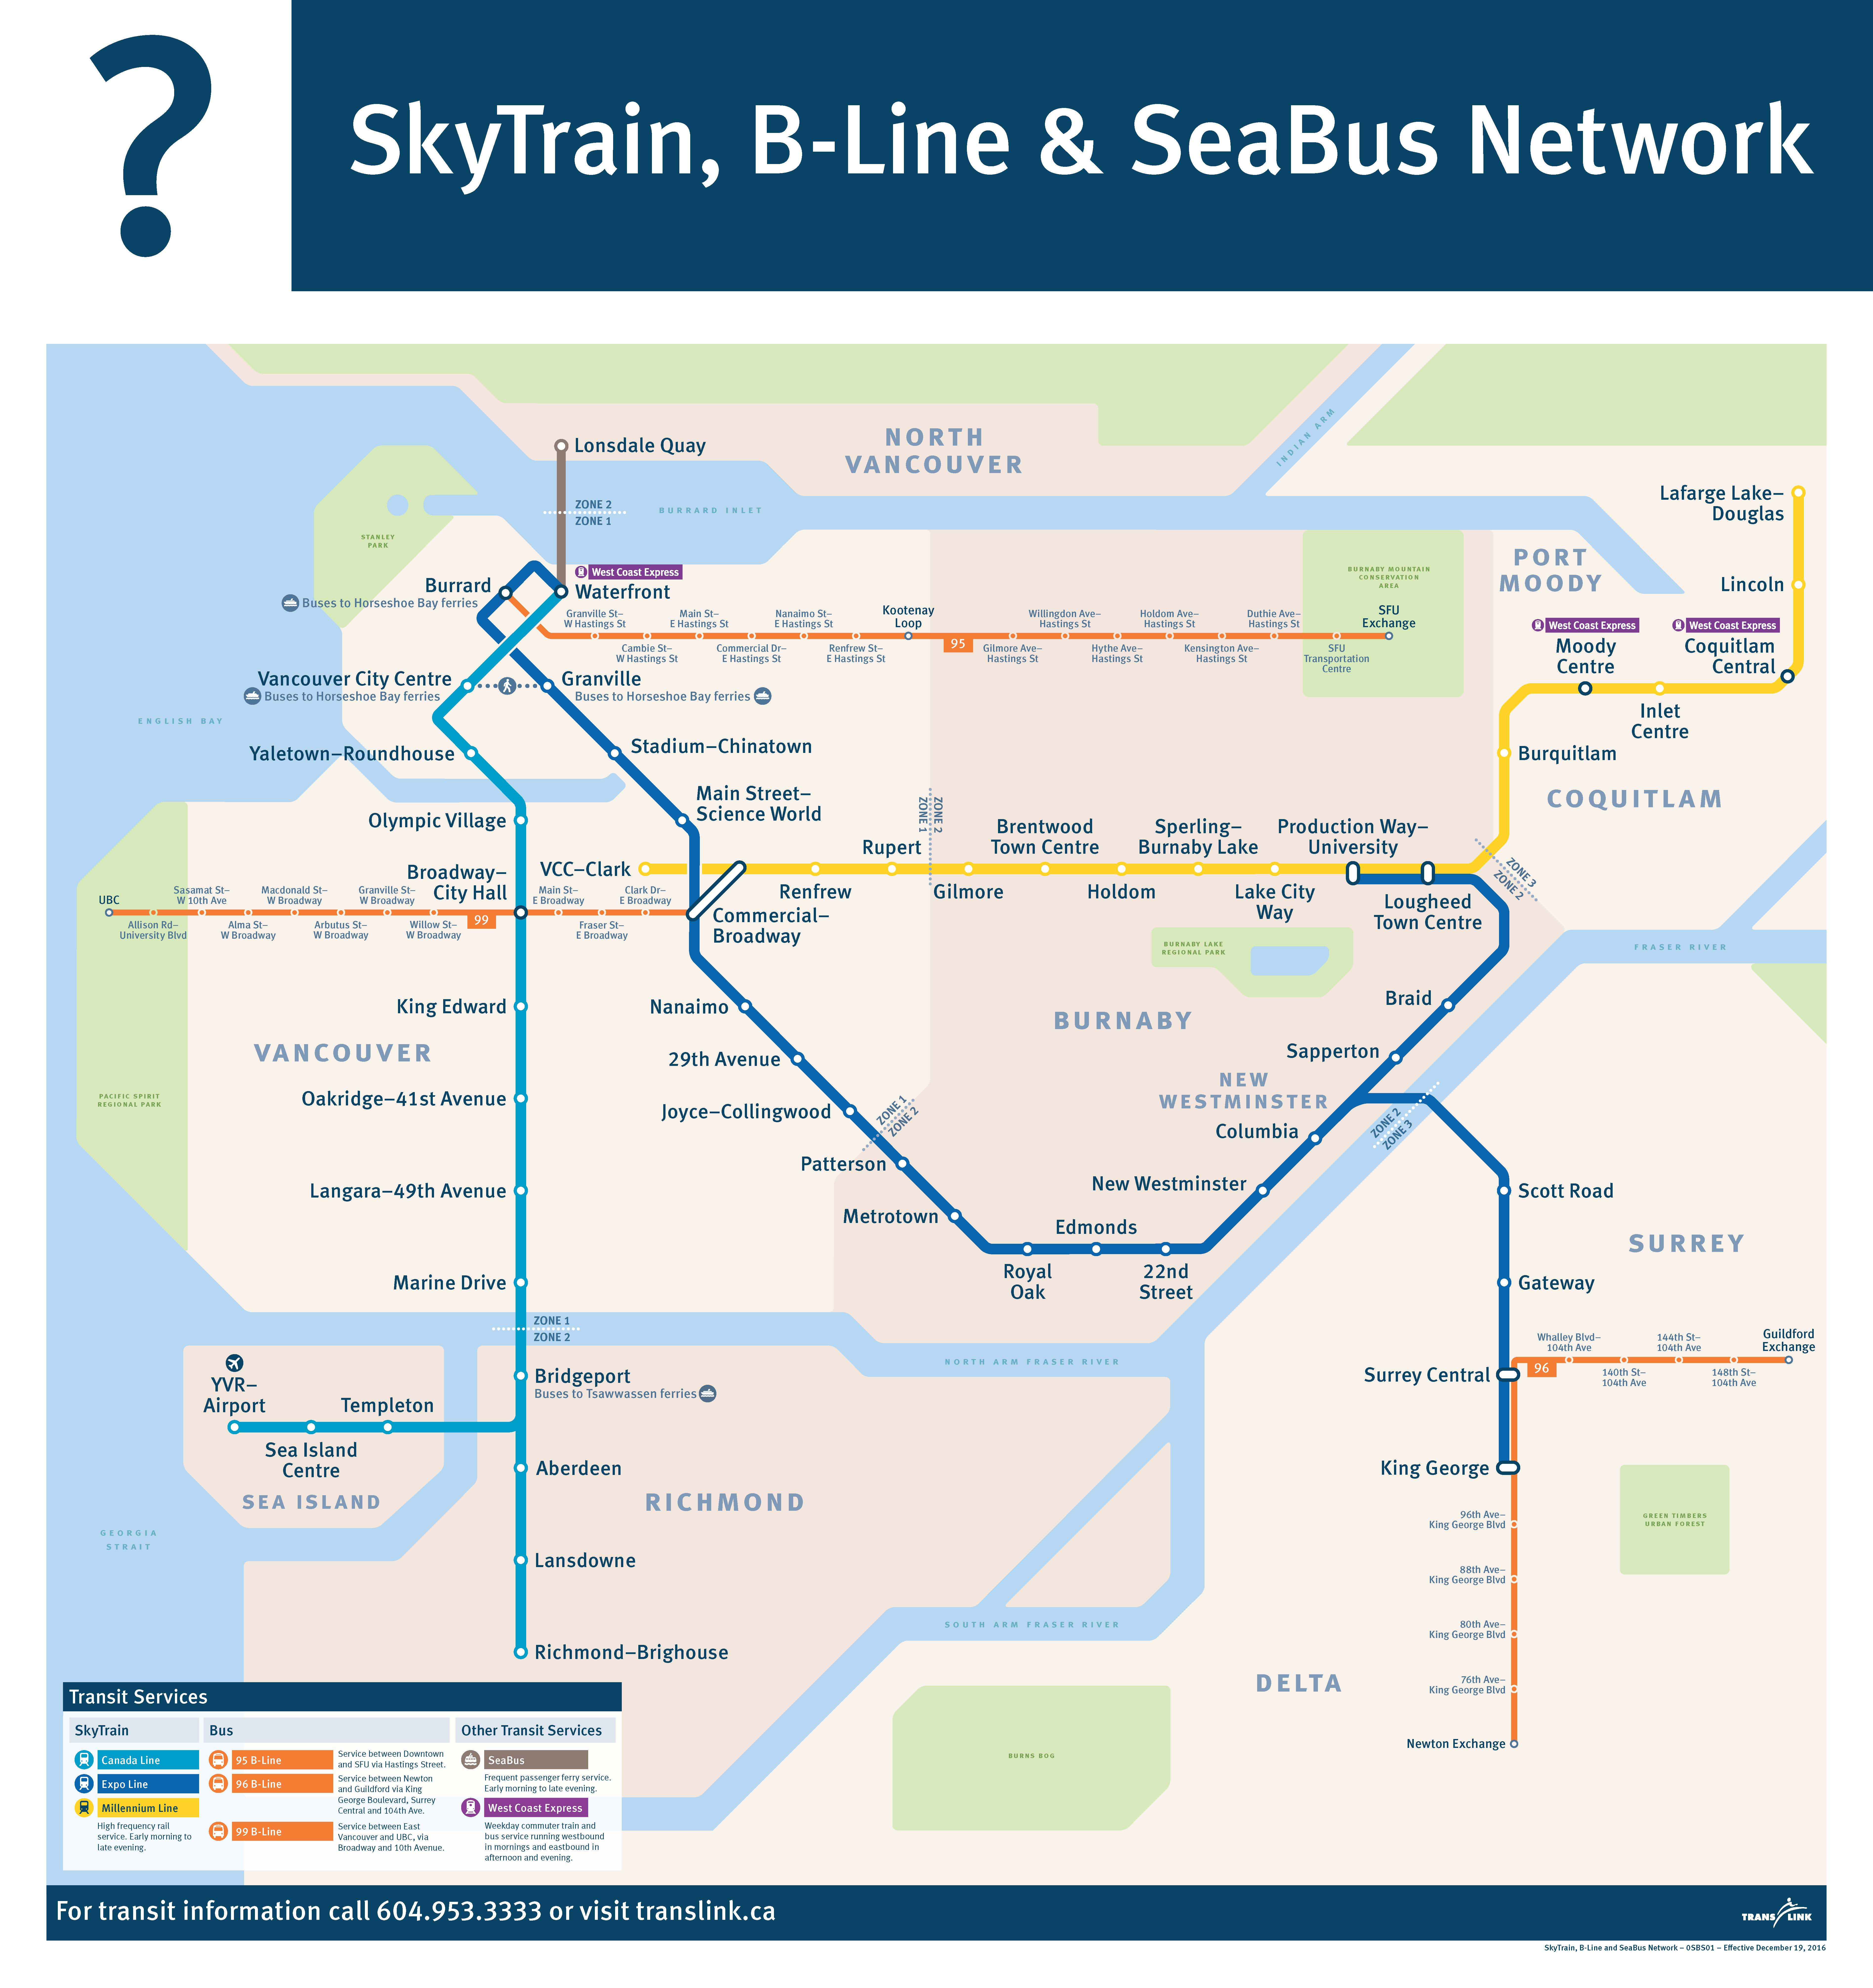 Vancouver SkyTrain, B-Line and SeaBus Network